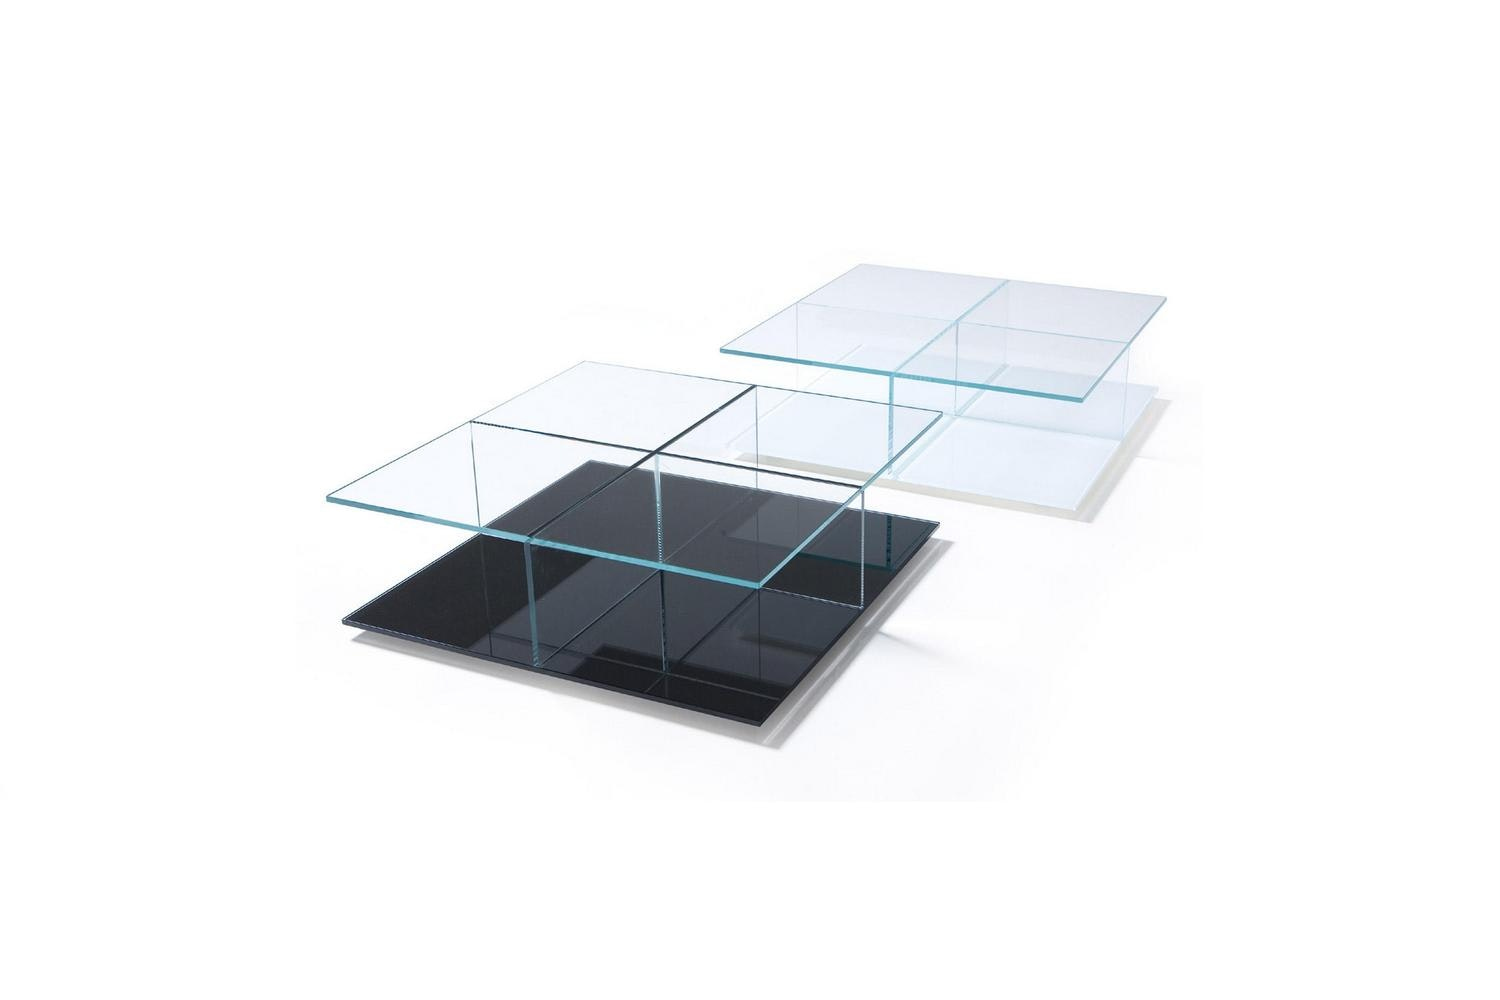 269 Mex Coffee Table by Piero Lissoni for Cassina